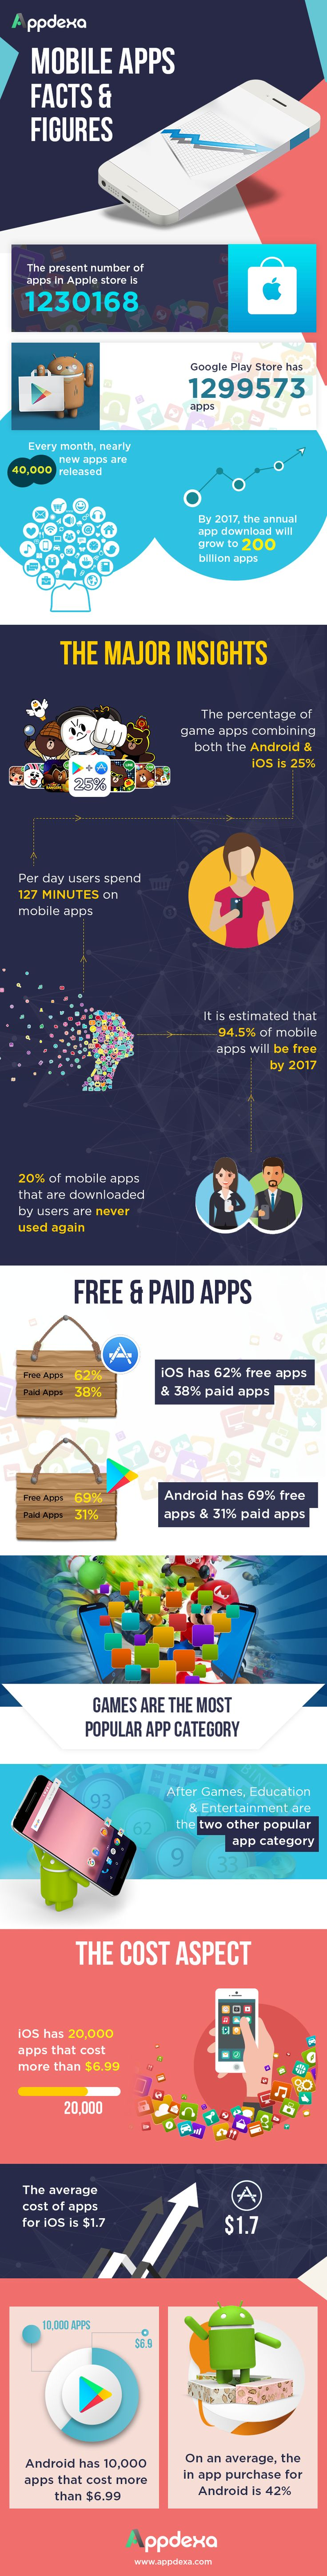 The Latest Mobile Apps Facts And Figures